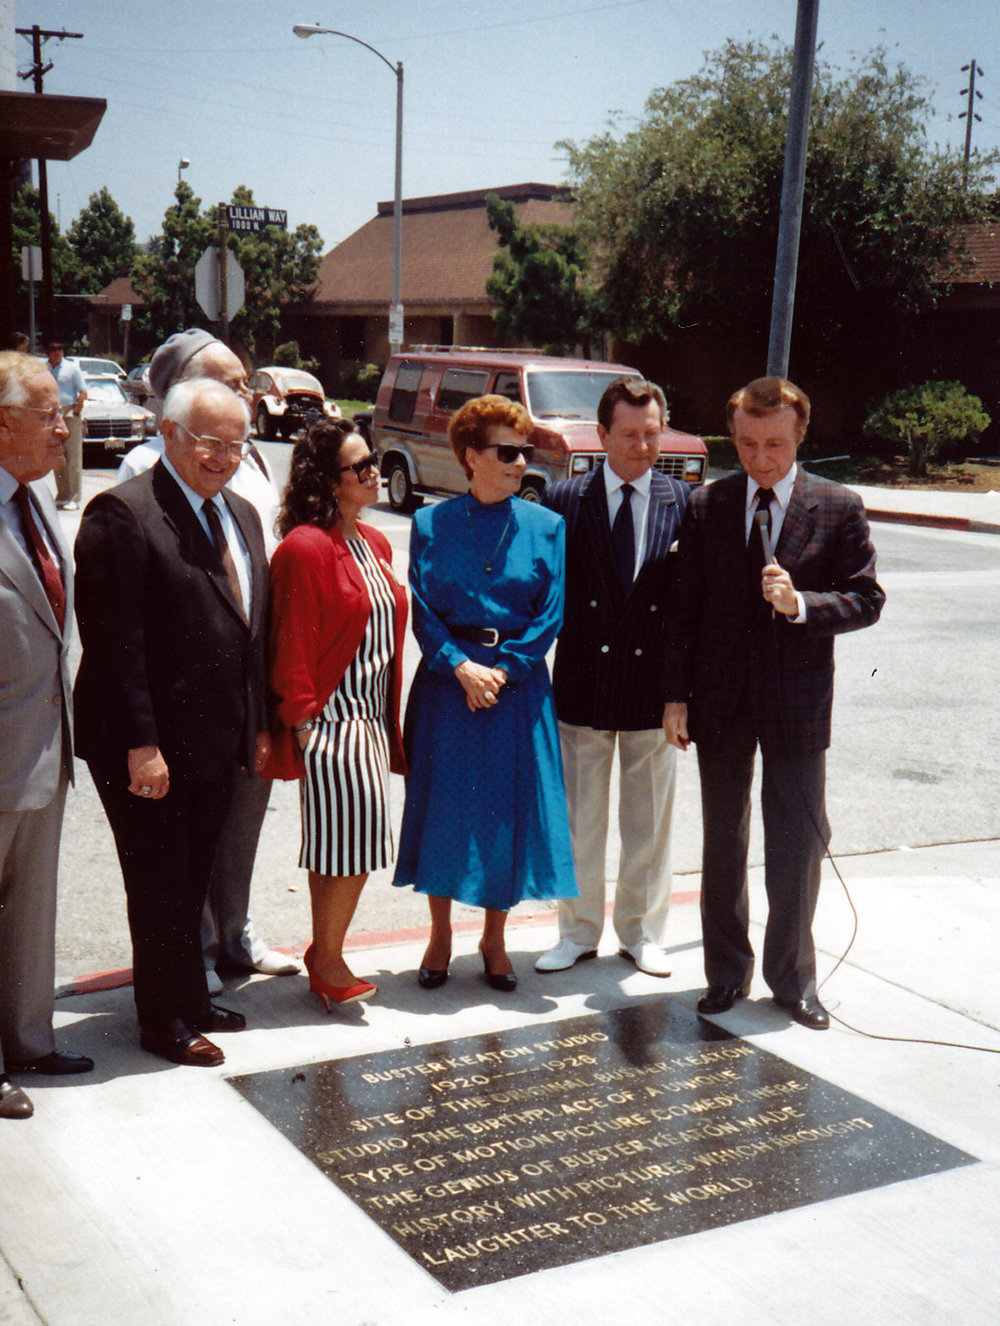 ORIGINAL DEDICATION 7-6-1988 Bill Welsh, Johnny Grant, Eleanor Keaton (Keaton's widow in blue), Donald O'Connor, Ralph Edwards PHOTO CREDIT-Leonard Maltin